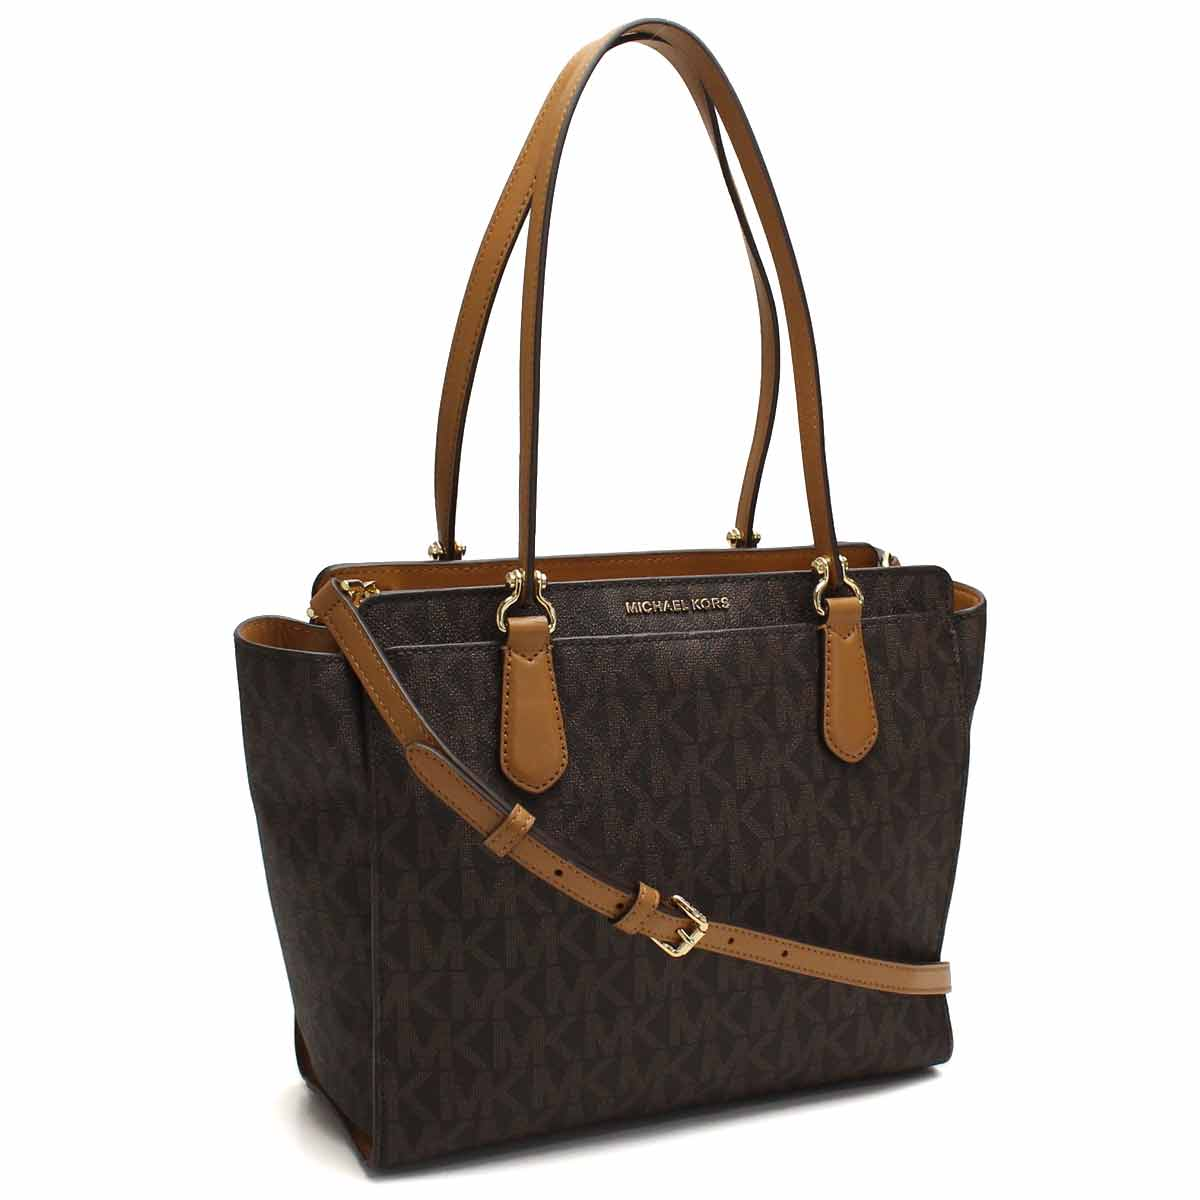 81a366abe25c50 Bighit The total brand wholesale: Michael Kors (MICHAEL KORS) TAMMY tote bag  30F6GTWT2B BROWN Brown( taxfree/send by EMS/authentic/A brand new item ) ...